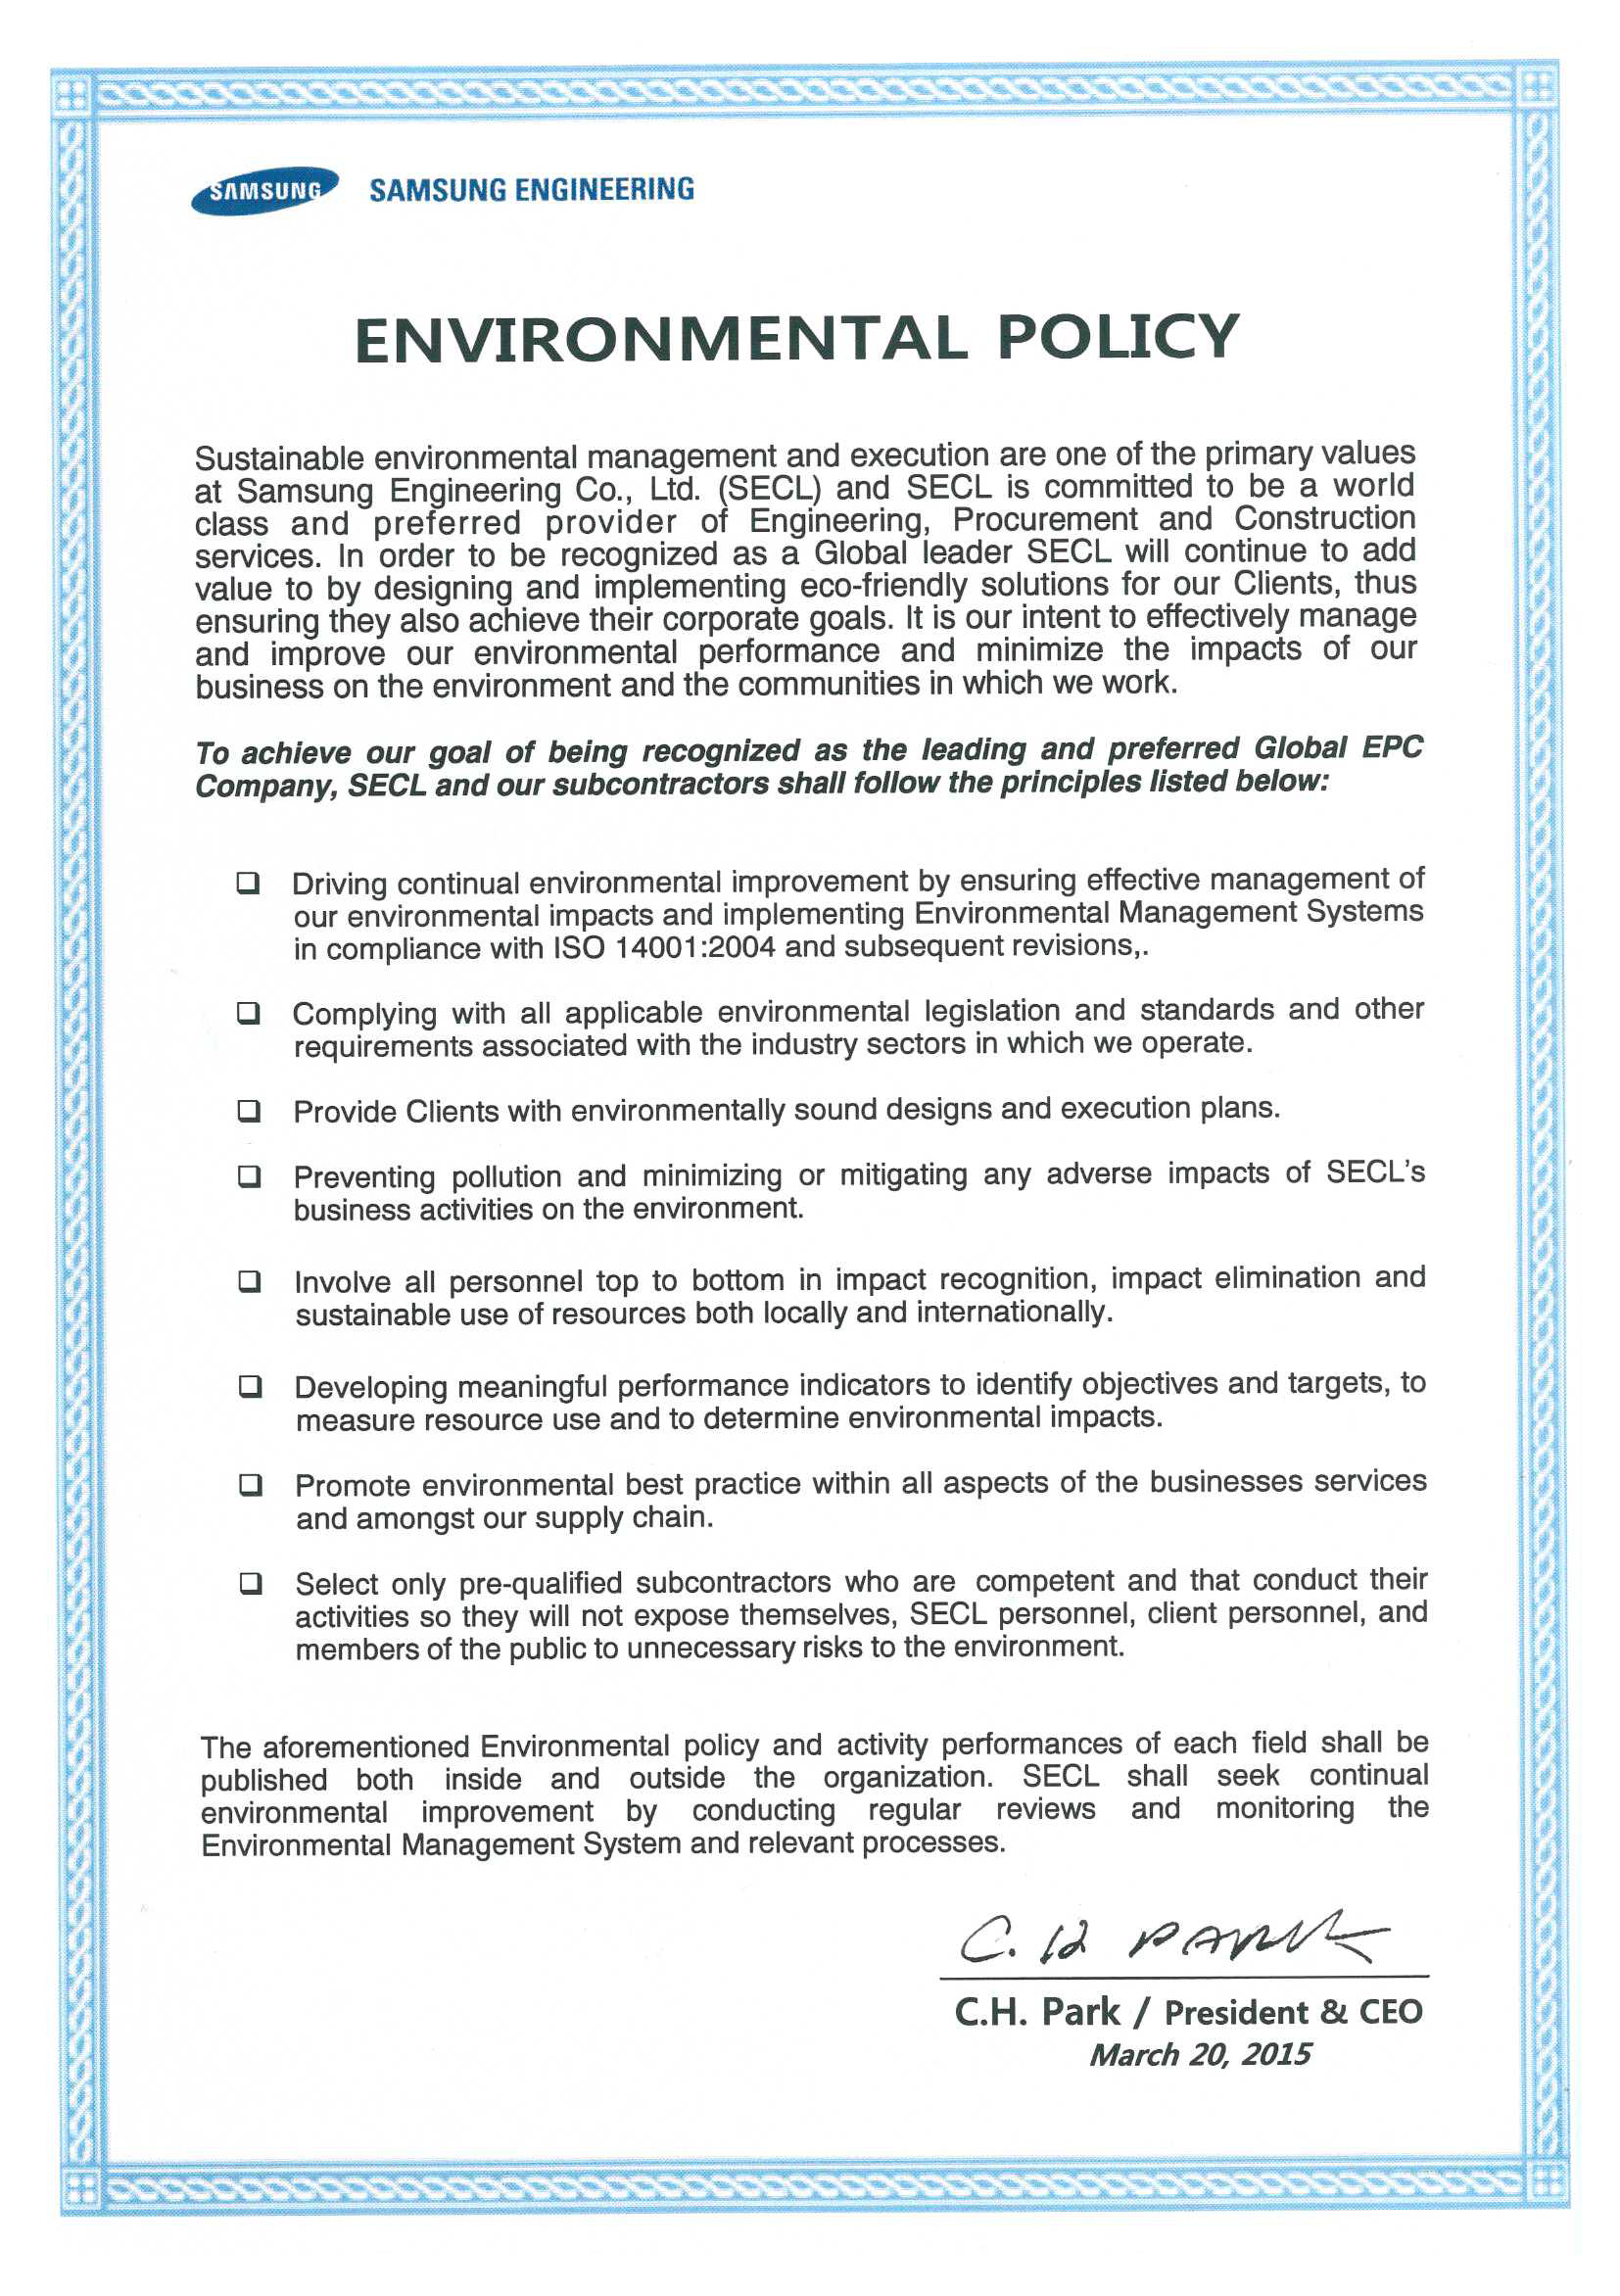 example of environmental policy Environmental policy rb is committed to running its business in a responsible,  environmentally sound and sustainable manner we recognise that our supply.